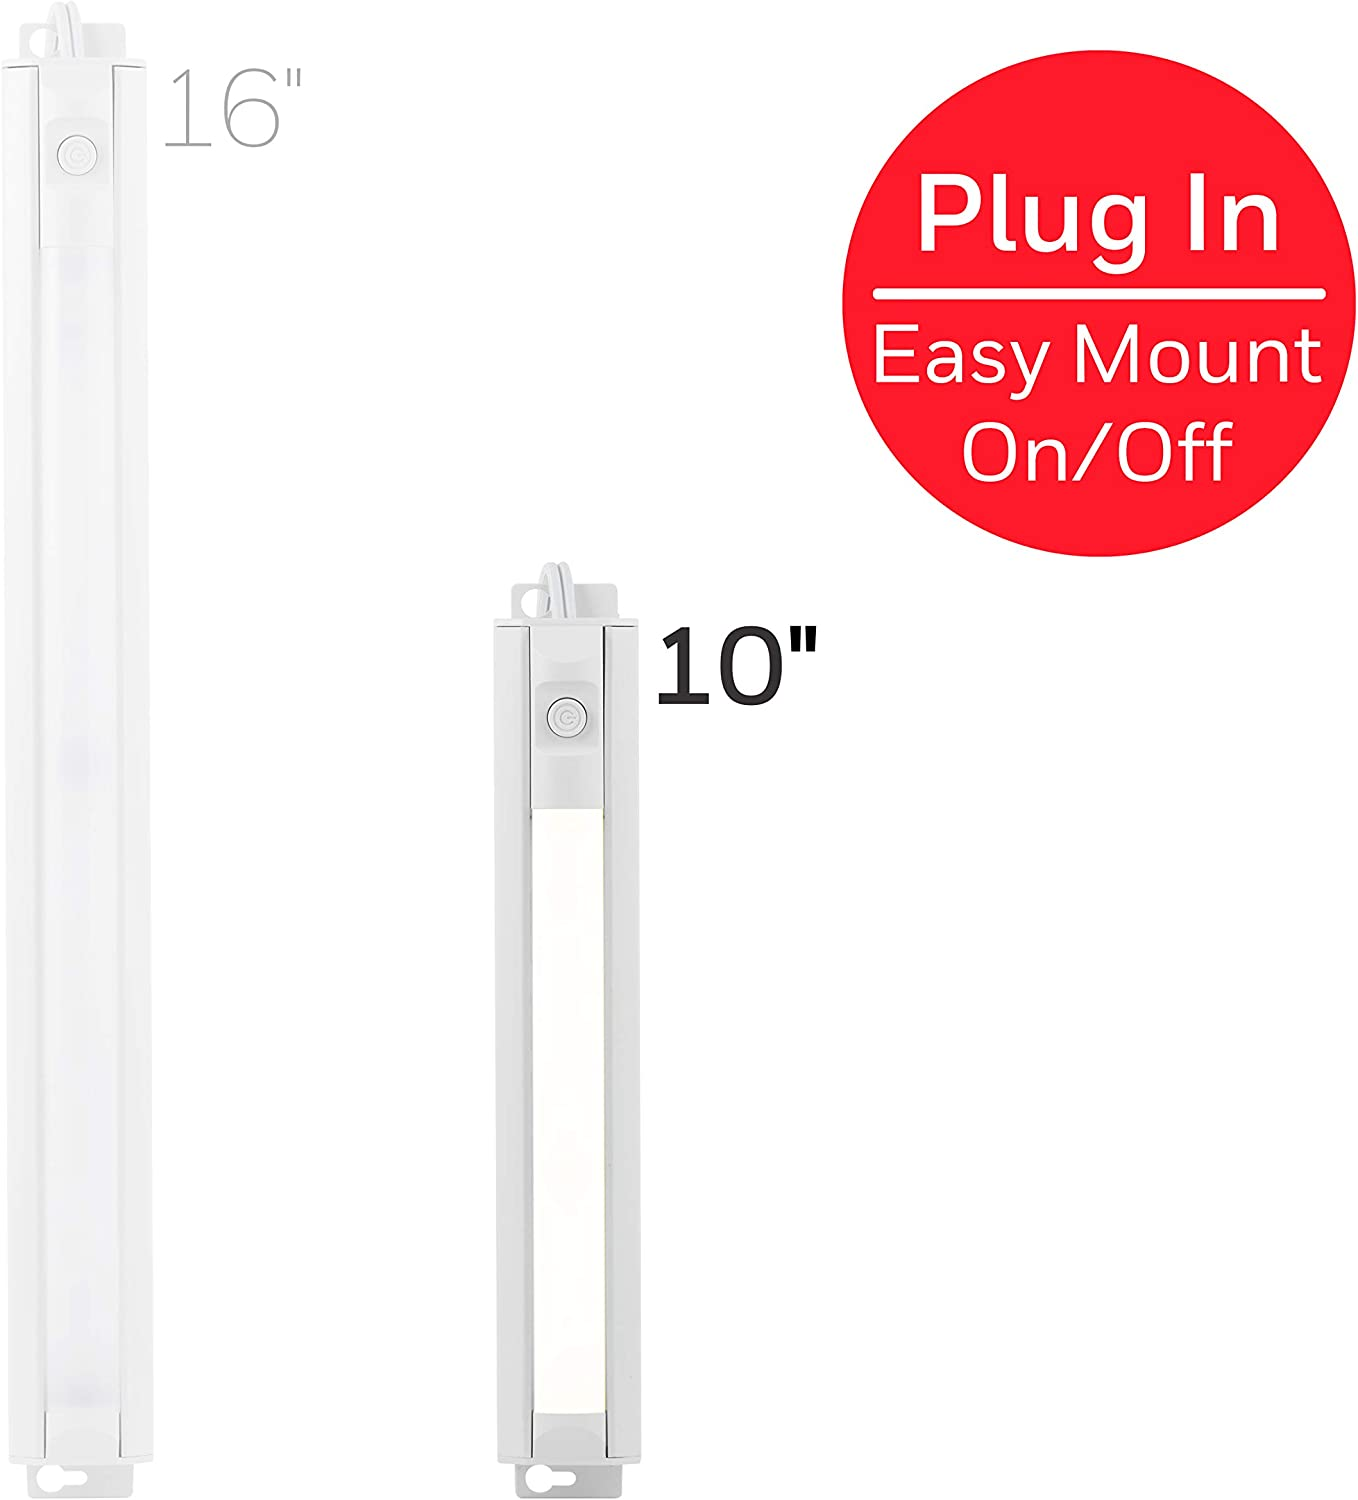 Honeywell 10in. LED Fixture, Bar, Flat Plug, Slim, Switch, Warm Bright, Closet, Cabinet Lighting, 44127, 10 in, White